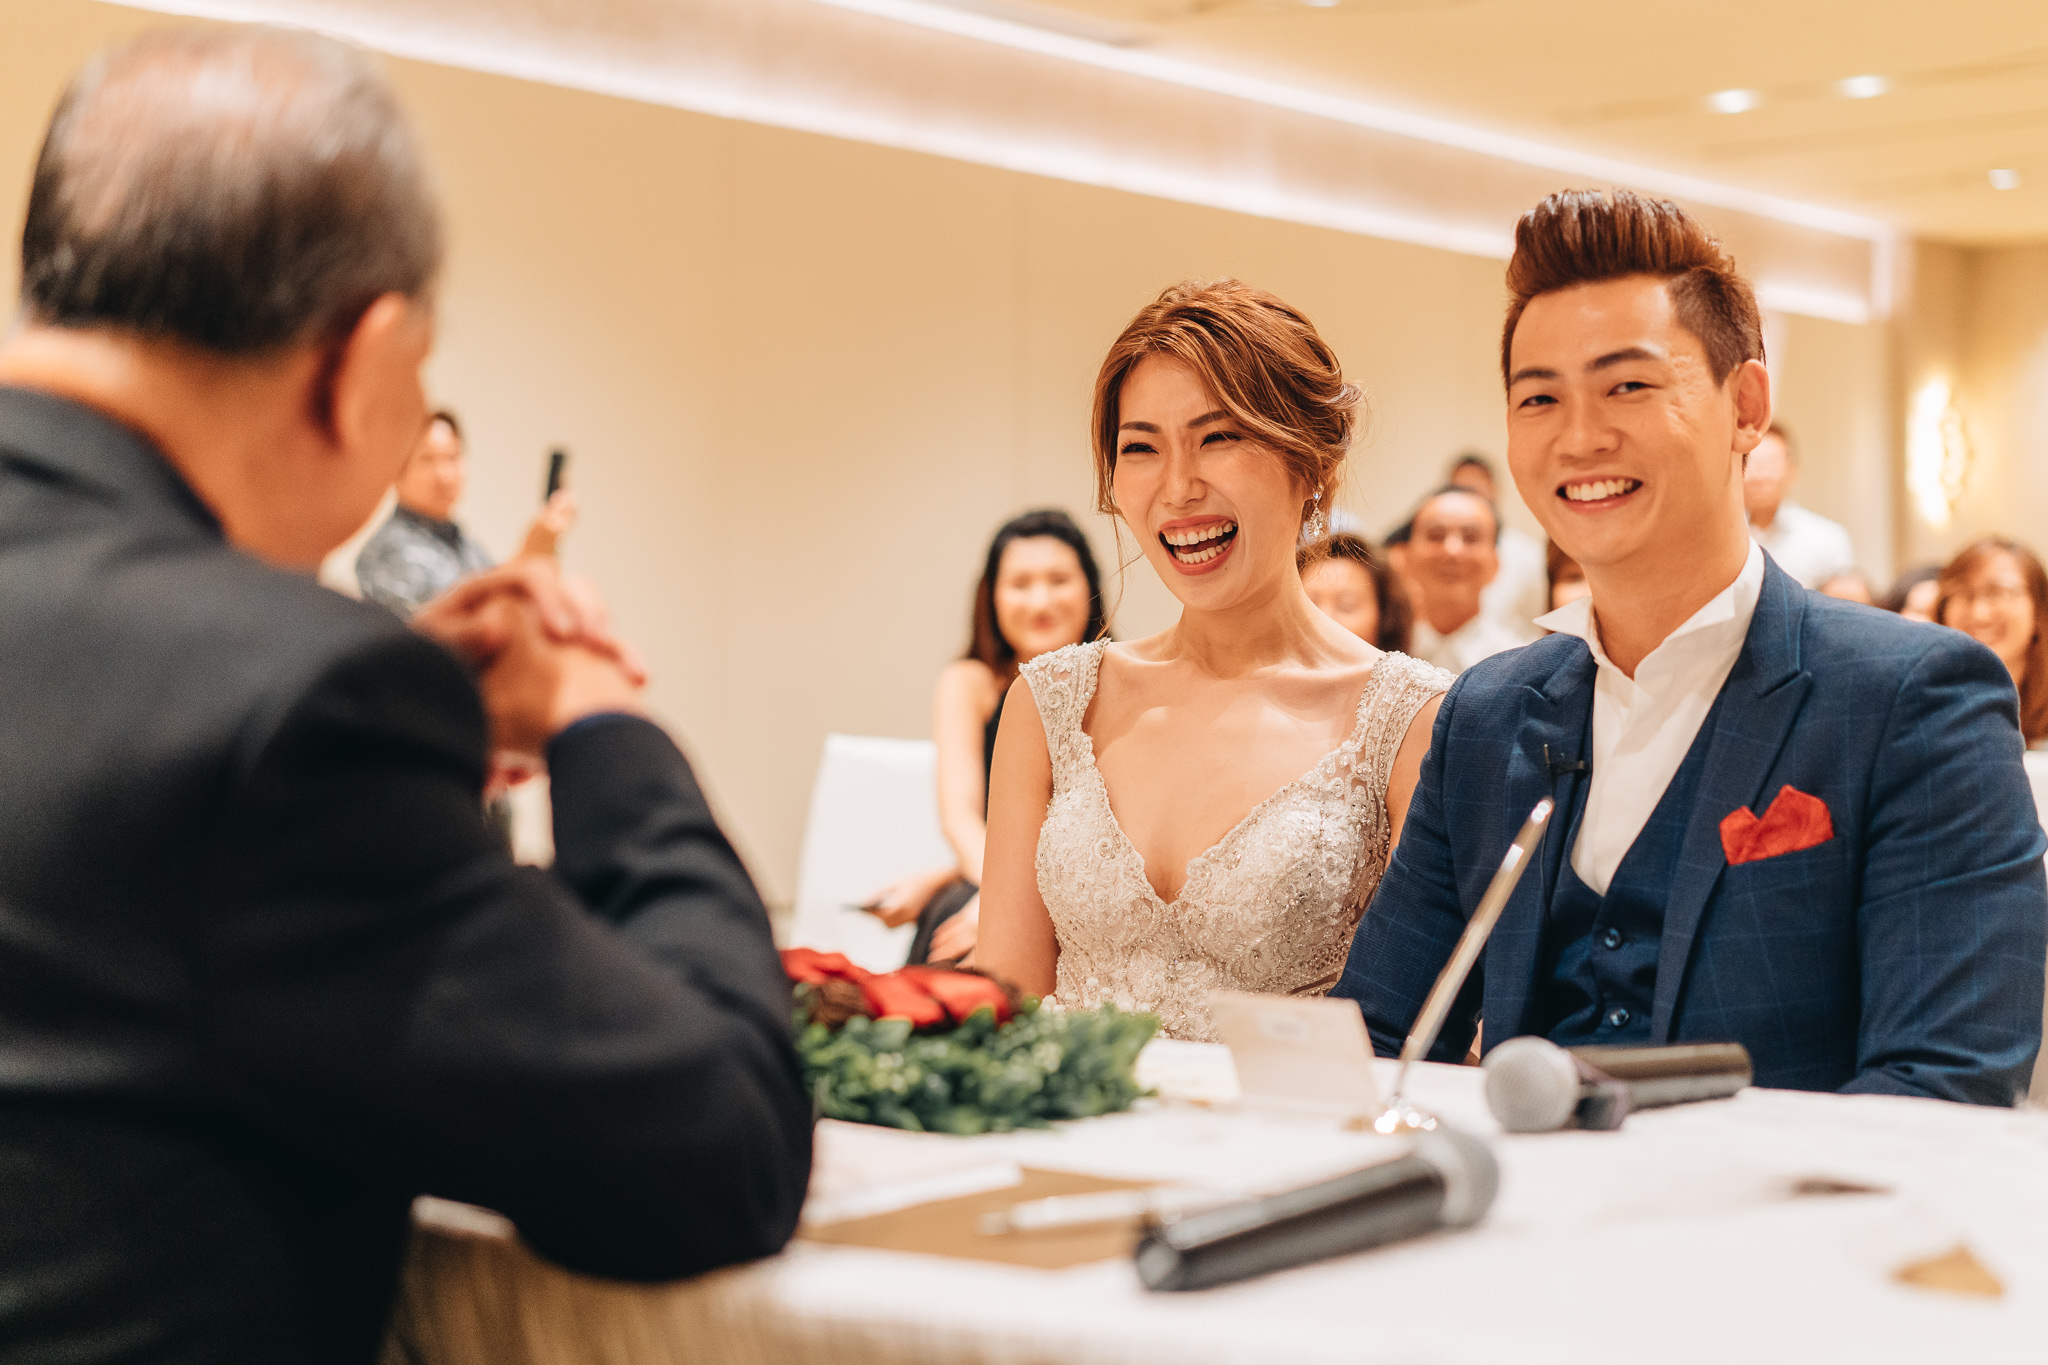 Cindy & Kevin Wedding Day Highlights (resized for sharing) - 147.jpg